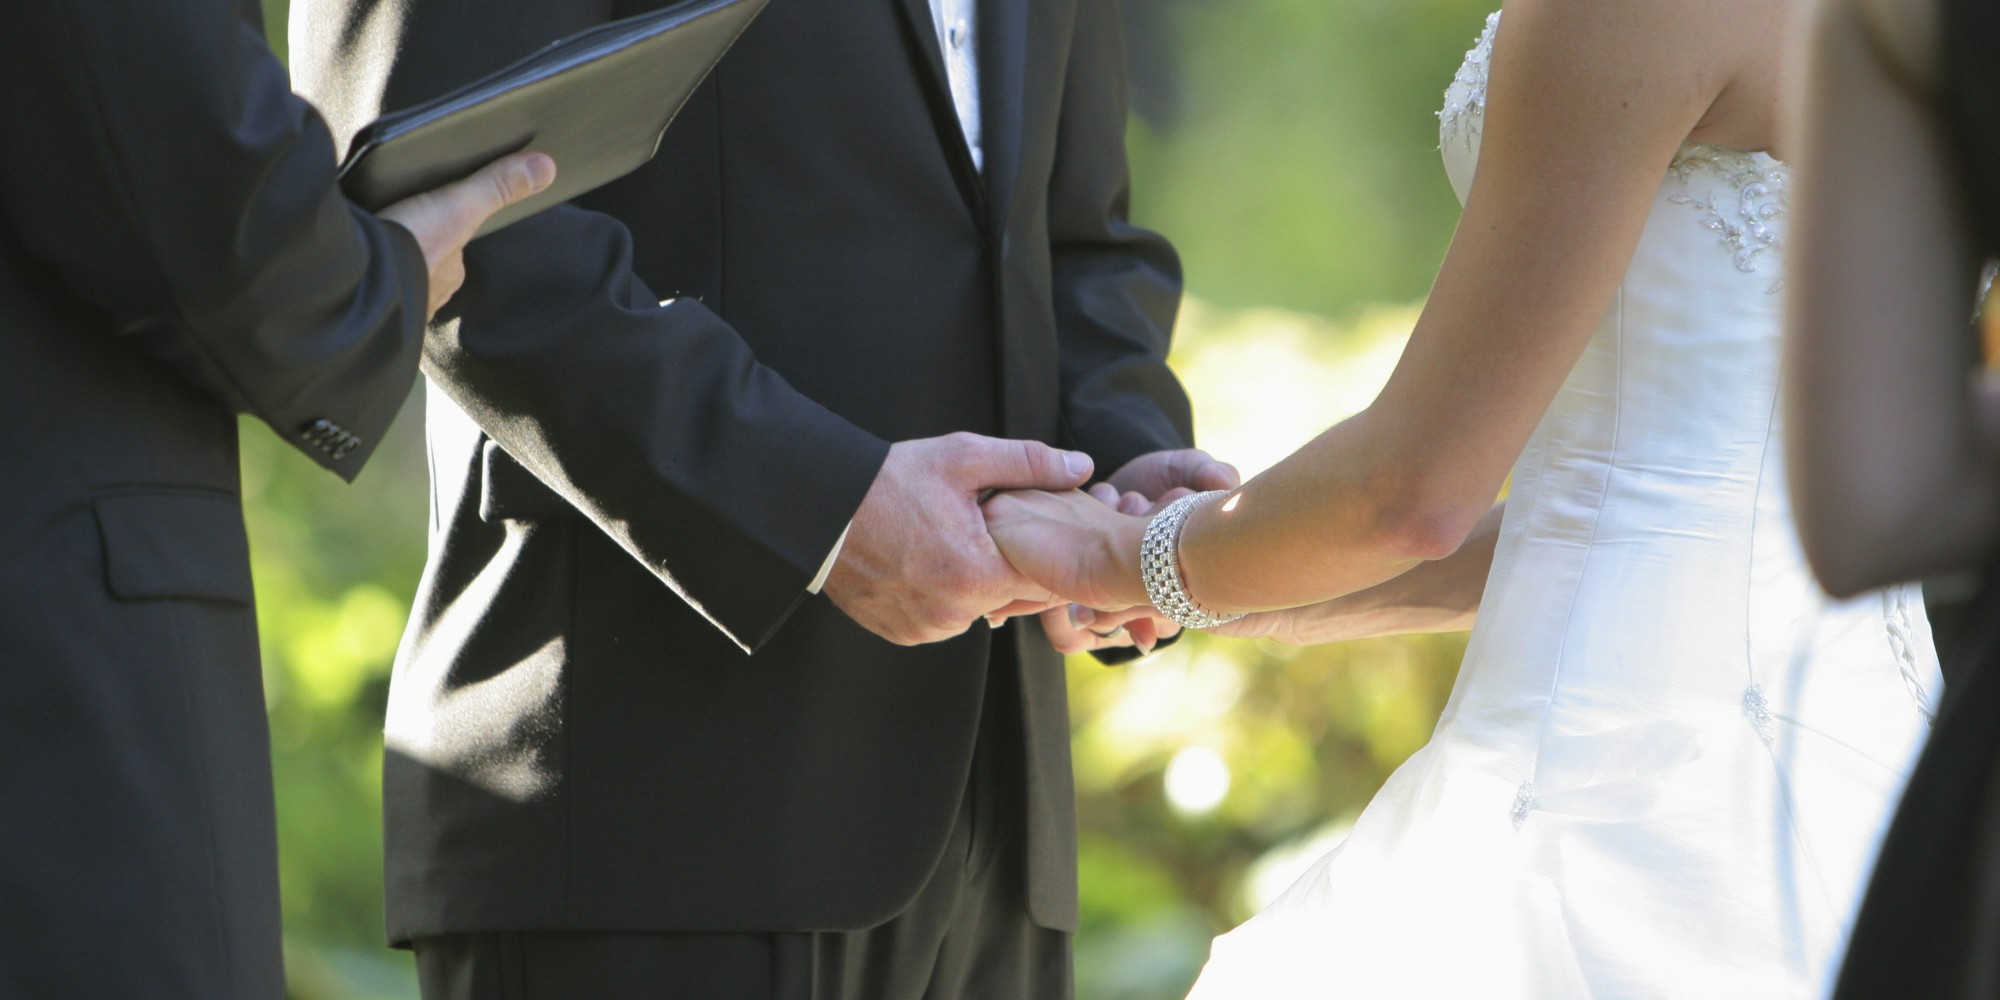 Cool Wedding Gifts For Young Couples: 10 Marriage Vows You Couldn't Possibly Have Known To Make